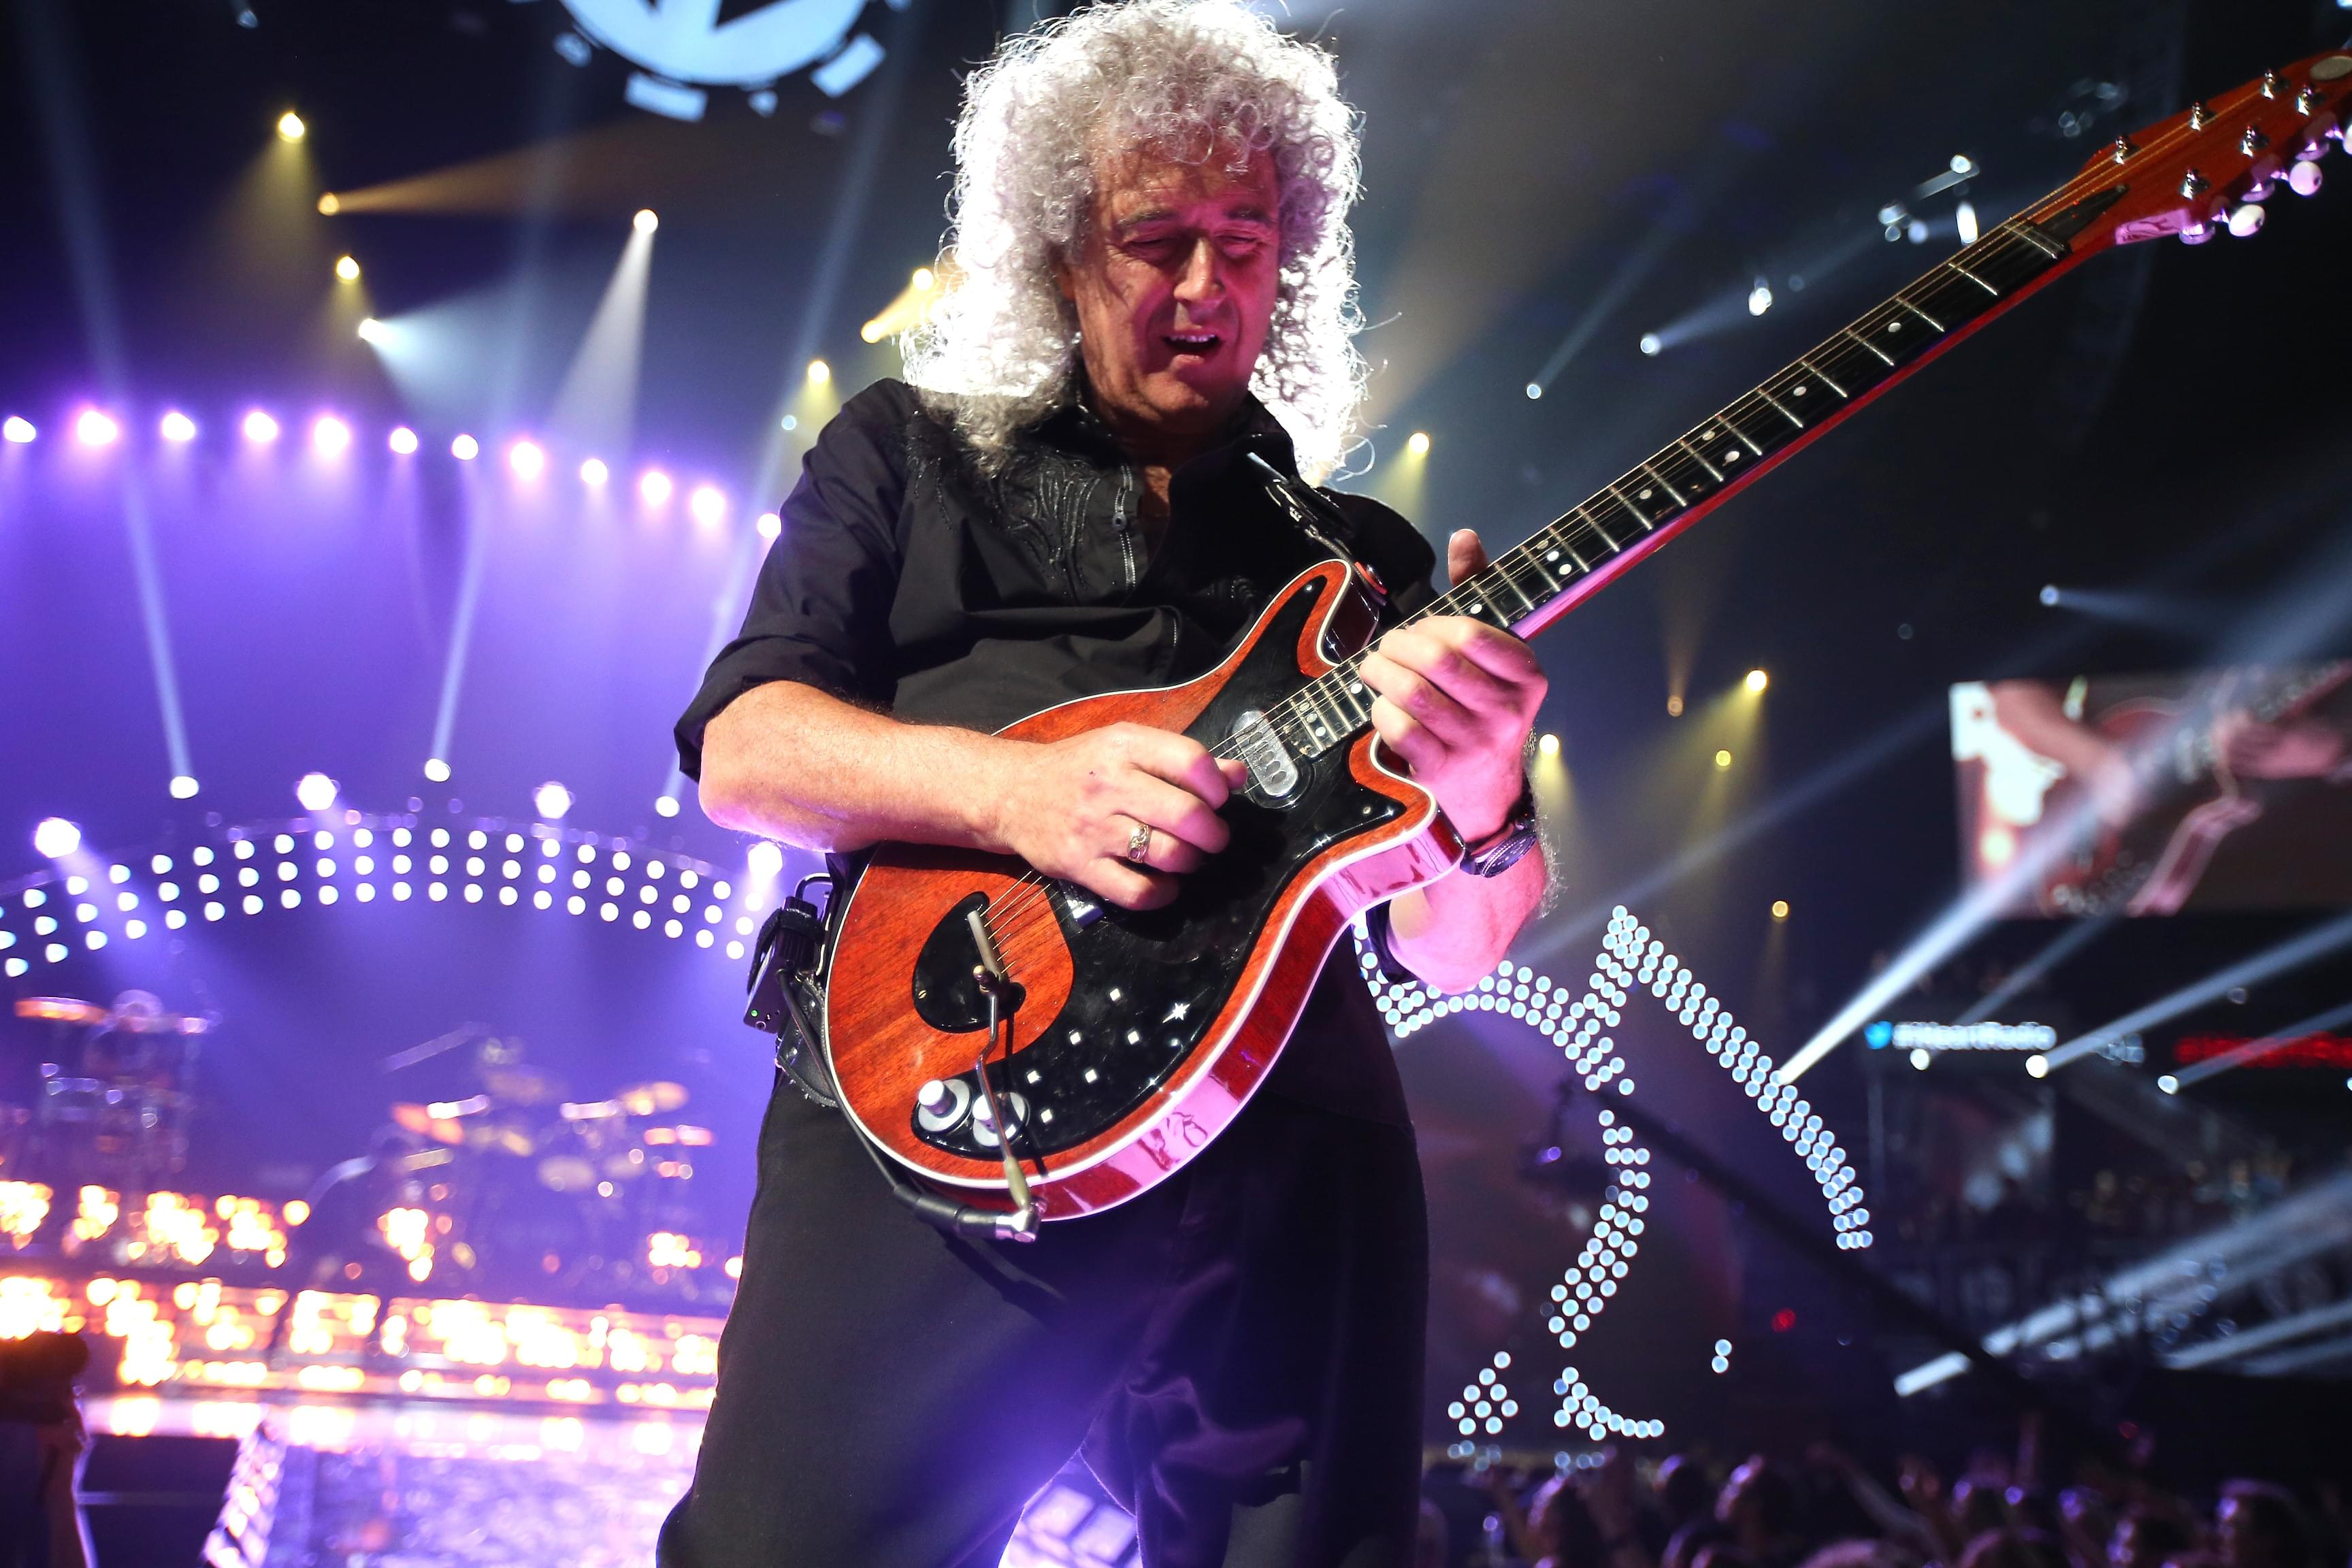 Queen's Brian May reveals he suffered a heart attack